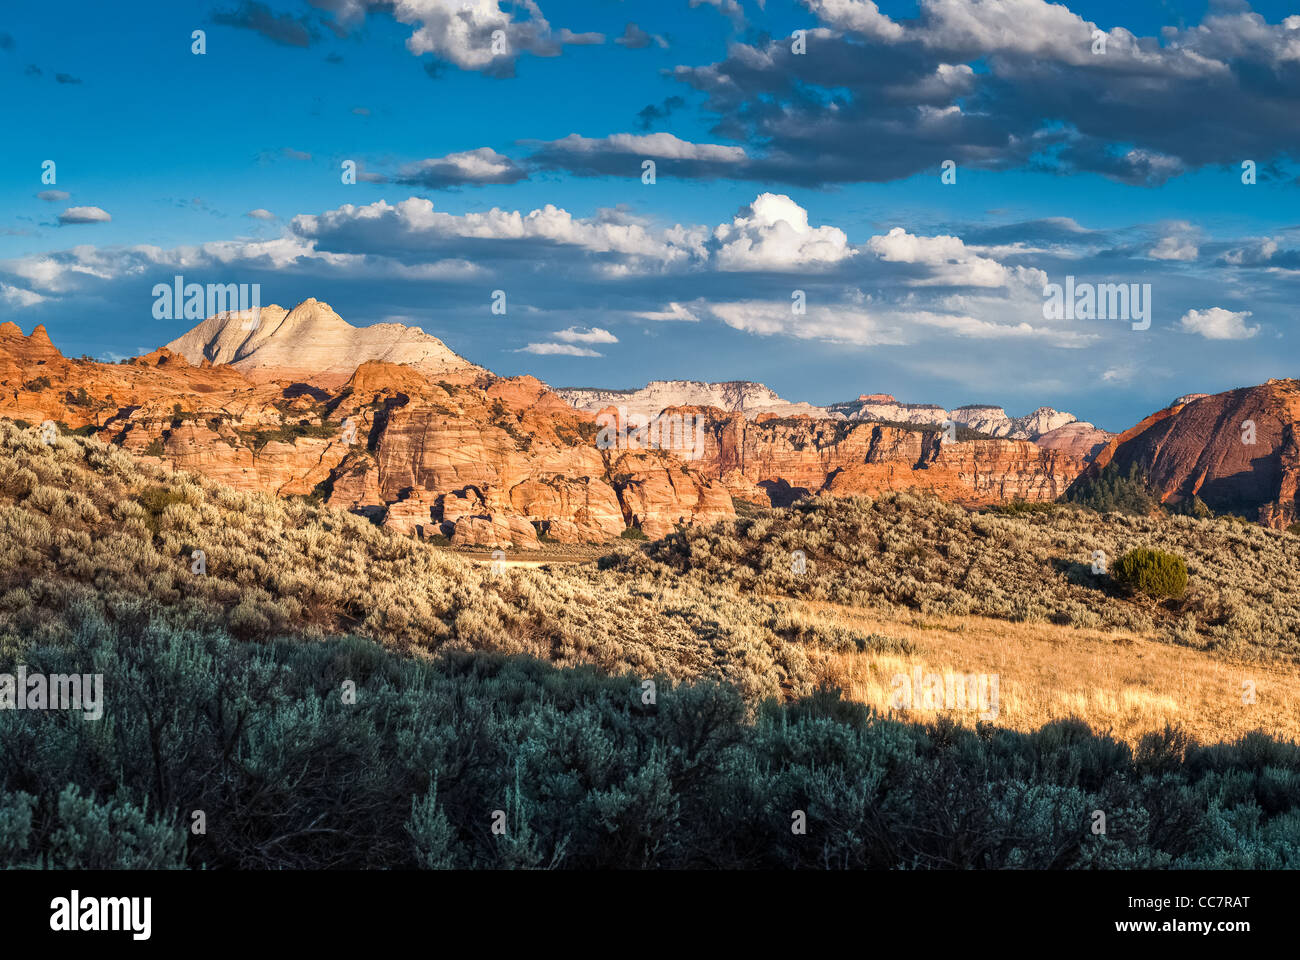 sunset panorama of sandstone cliffs at kolob plateau in zion national park, utah, usa - Stock Image